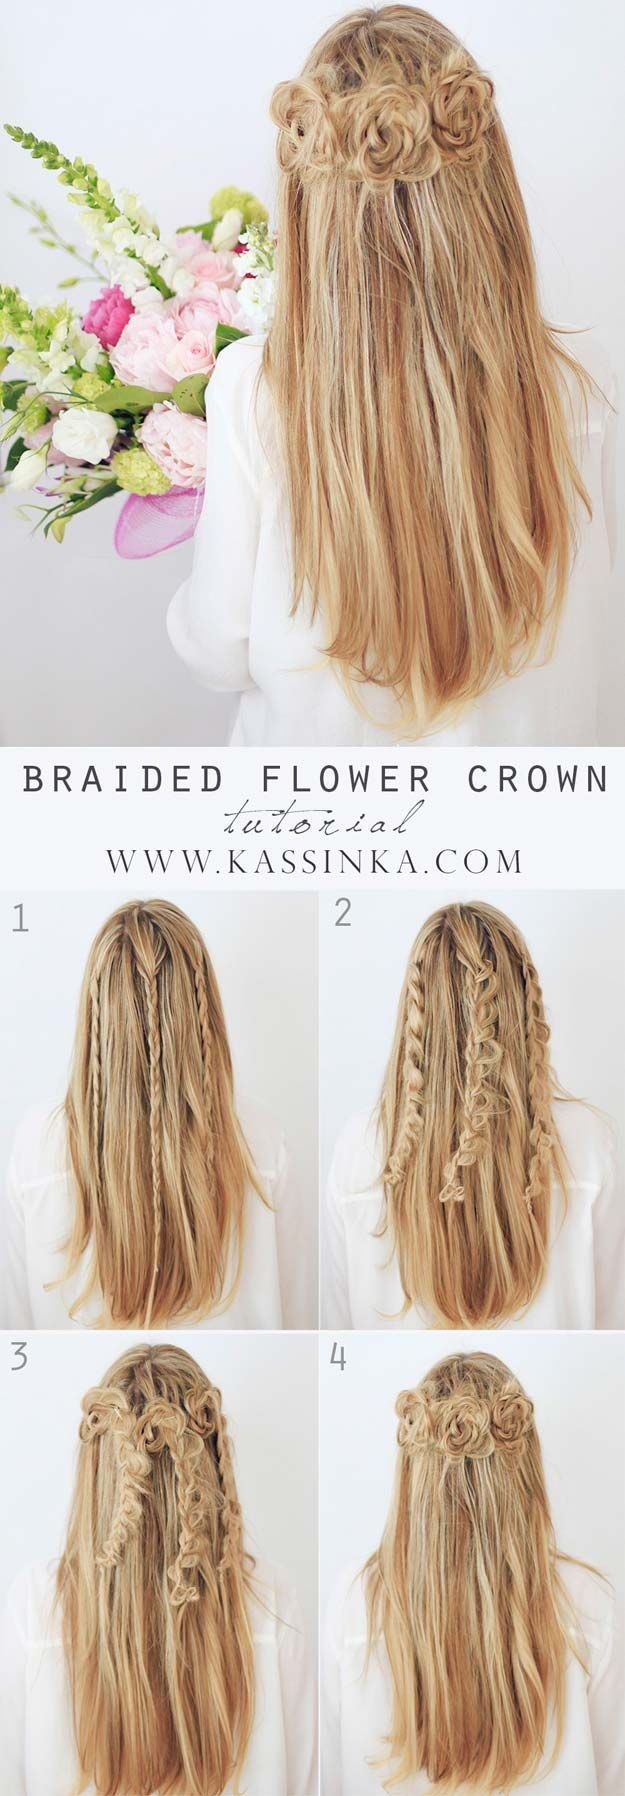 Best Hairstyles for Long Hair - Braided Flower Crown - Step by Step Tutorials fo...